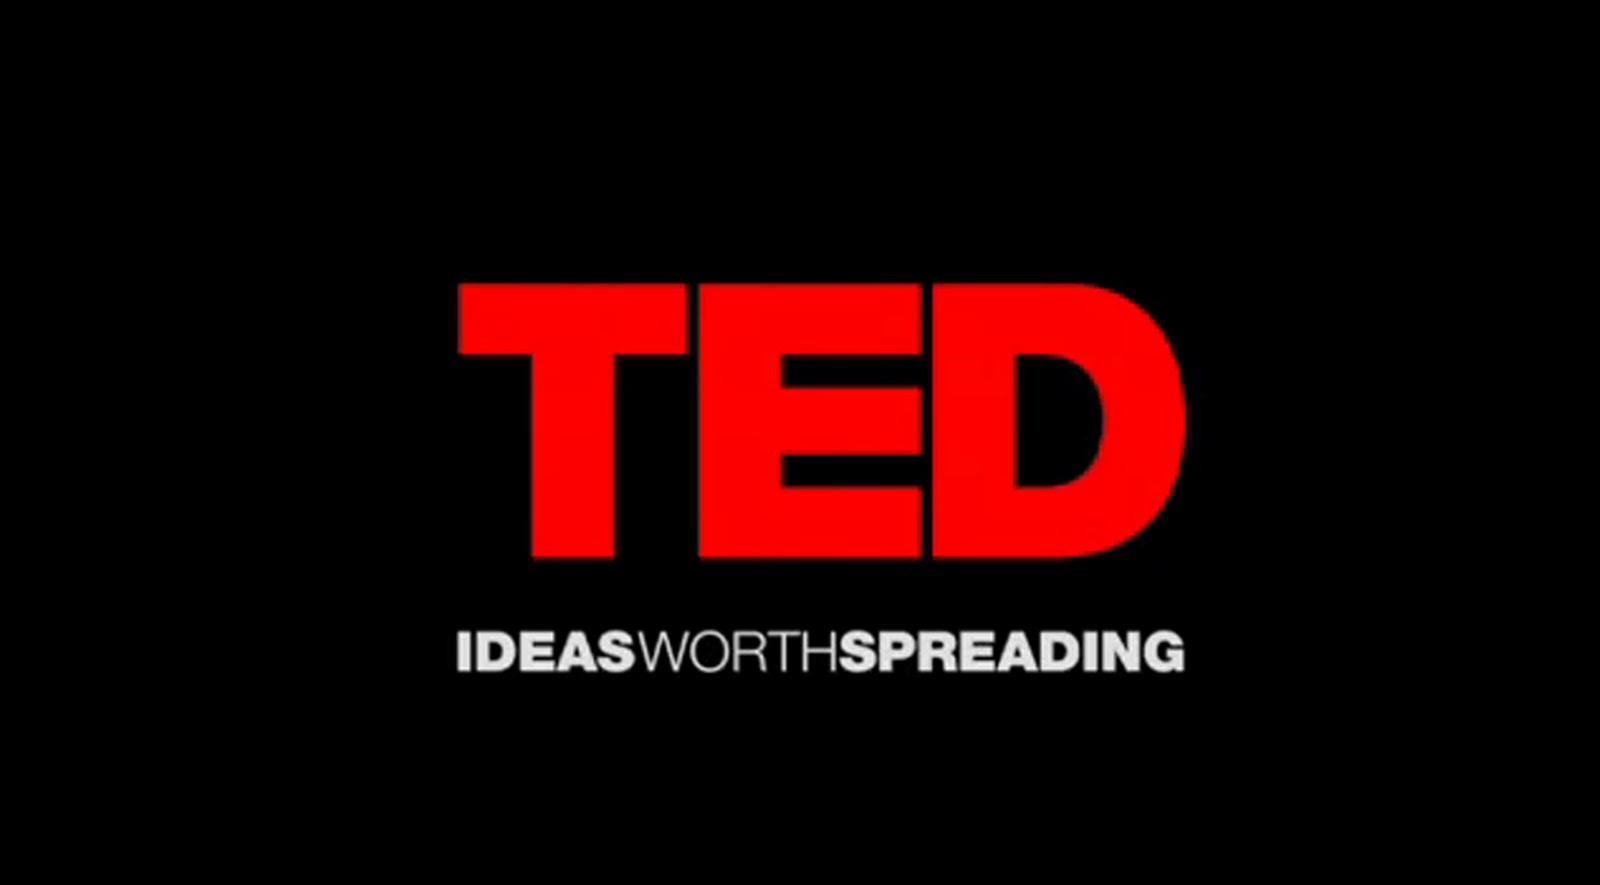 Watch one TED talk per day - Similarly, watching TED talks can be a really easy and interesting way to keep up to date with some of the most exciting advances in medical technology and thoughtful arguments in ethical dilemmas. Some of Applican's favourite TED talks to get you started are below!